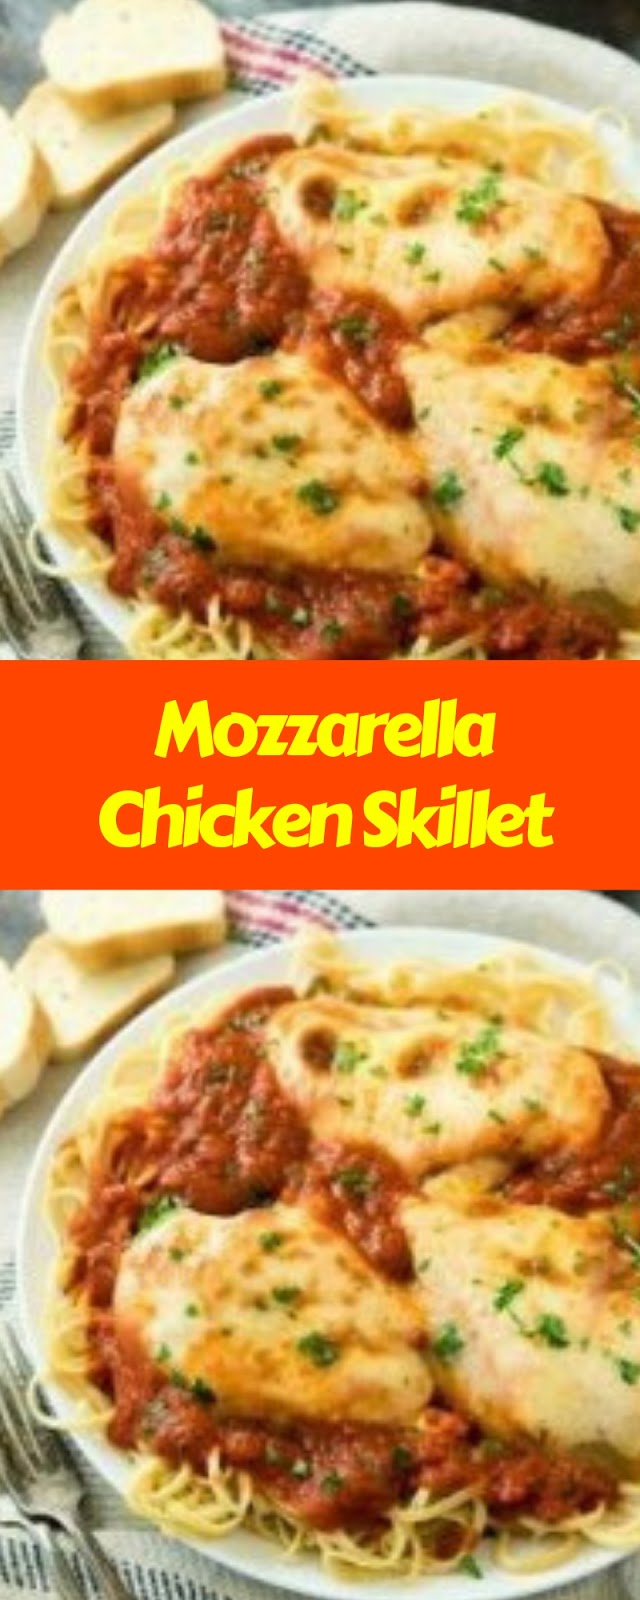 Mozzarella Chicken Skillet